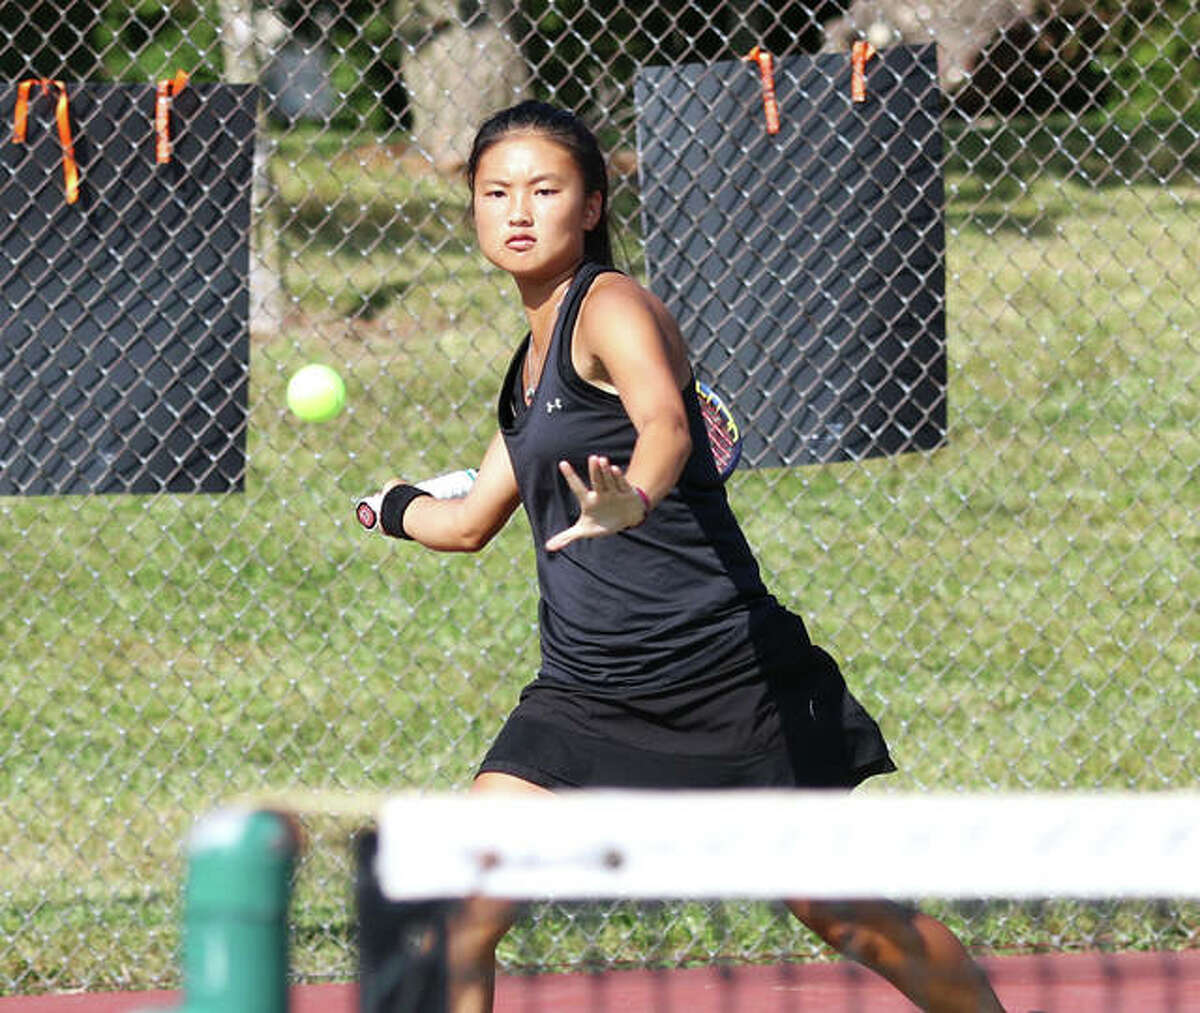 Edwardsville sophomore Chloe Koons returns a shot during the Southern Illinois Duals on Sept. 25 at Edwardsville. Koons is the 2020 Telegraph Girls Tennis Player of the Year.